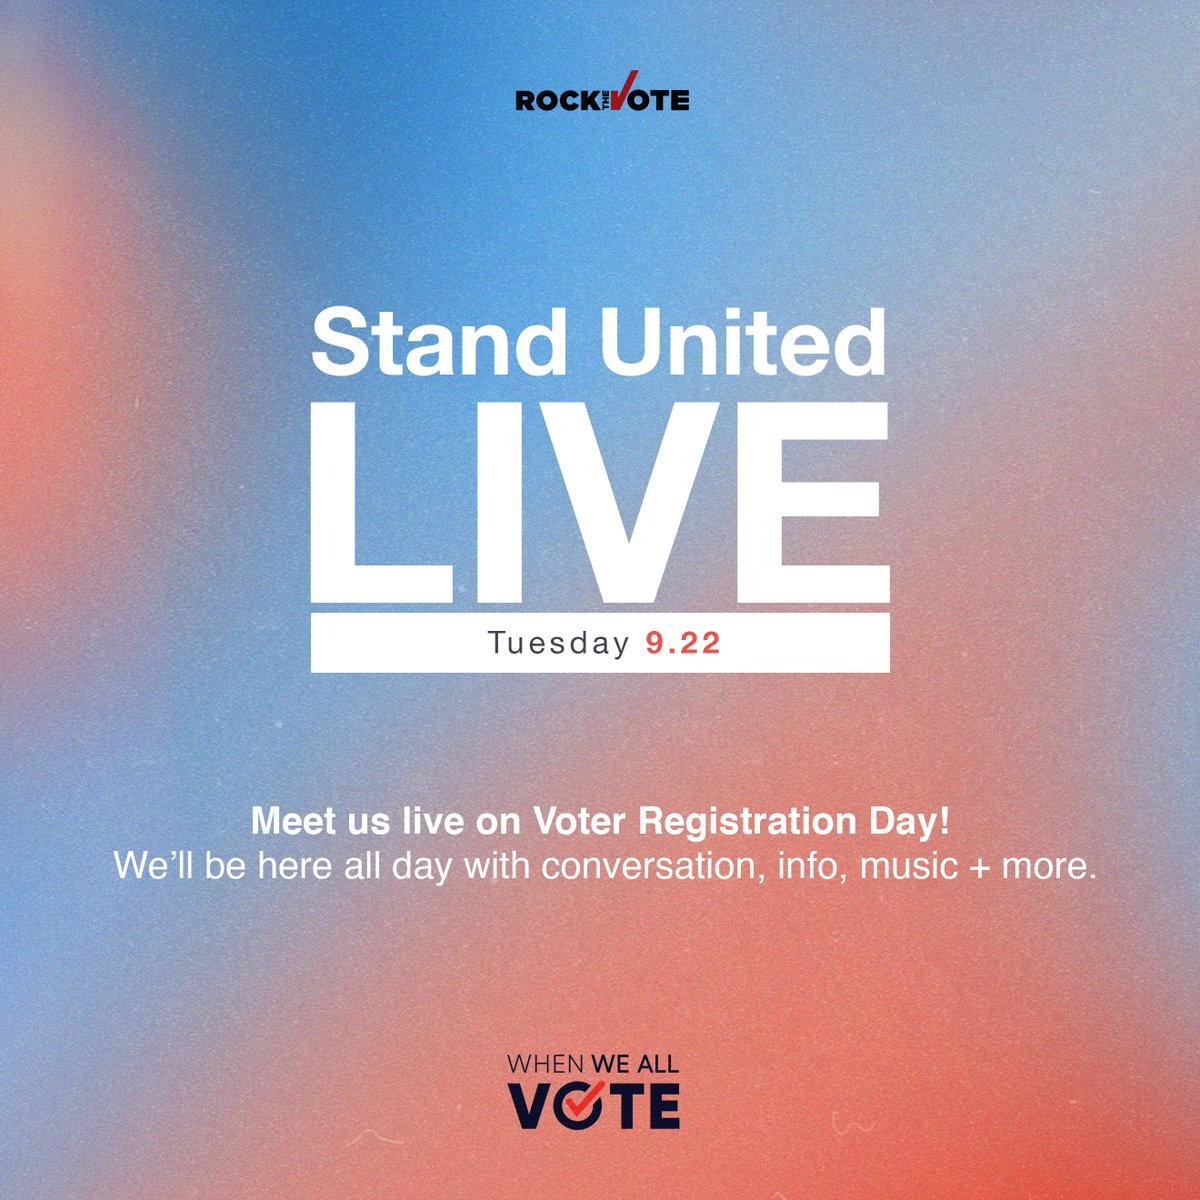 #StandUnited Instagram LIVE on Tuesday, Sept 22nd, we'll be sharing the (digital) stage in celebration of #NationalVoterRegistrationDay featuring:  12PM ET/9AM PT: Amber Cabral  3PM ET/12PM PT: @YNB + @JeromeFosterII with @WhenWeAllVote  8PM ET/5PM PT: @iamjojo with @RockTheVote https://t.co/BA9dkxolFd